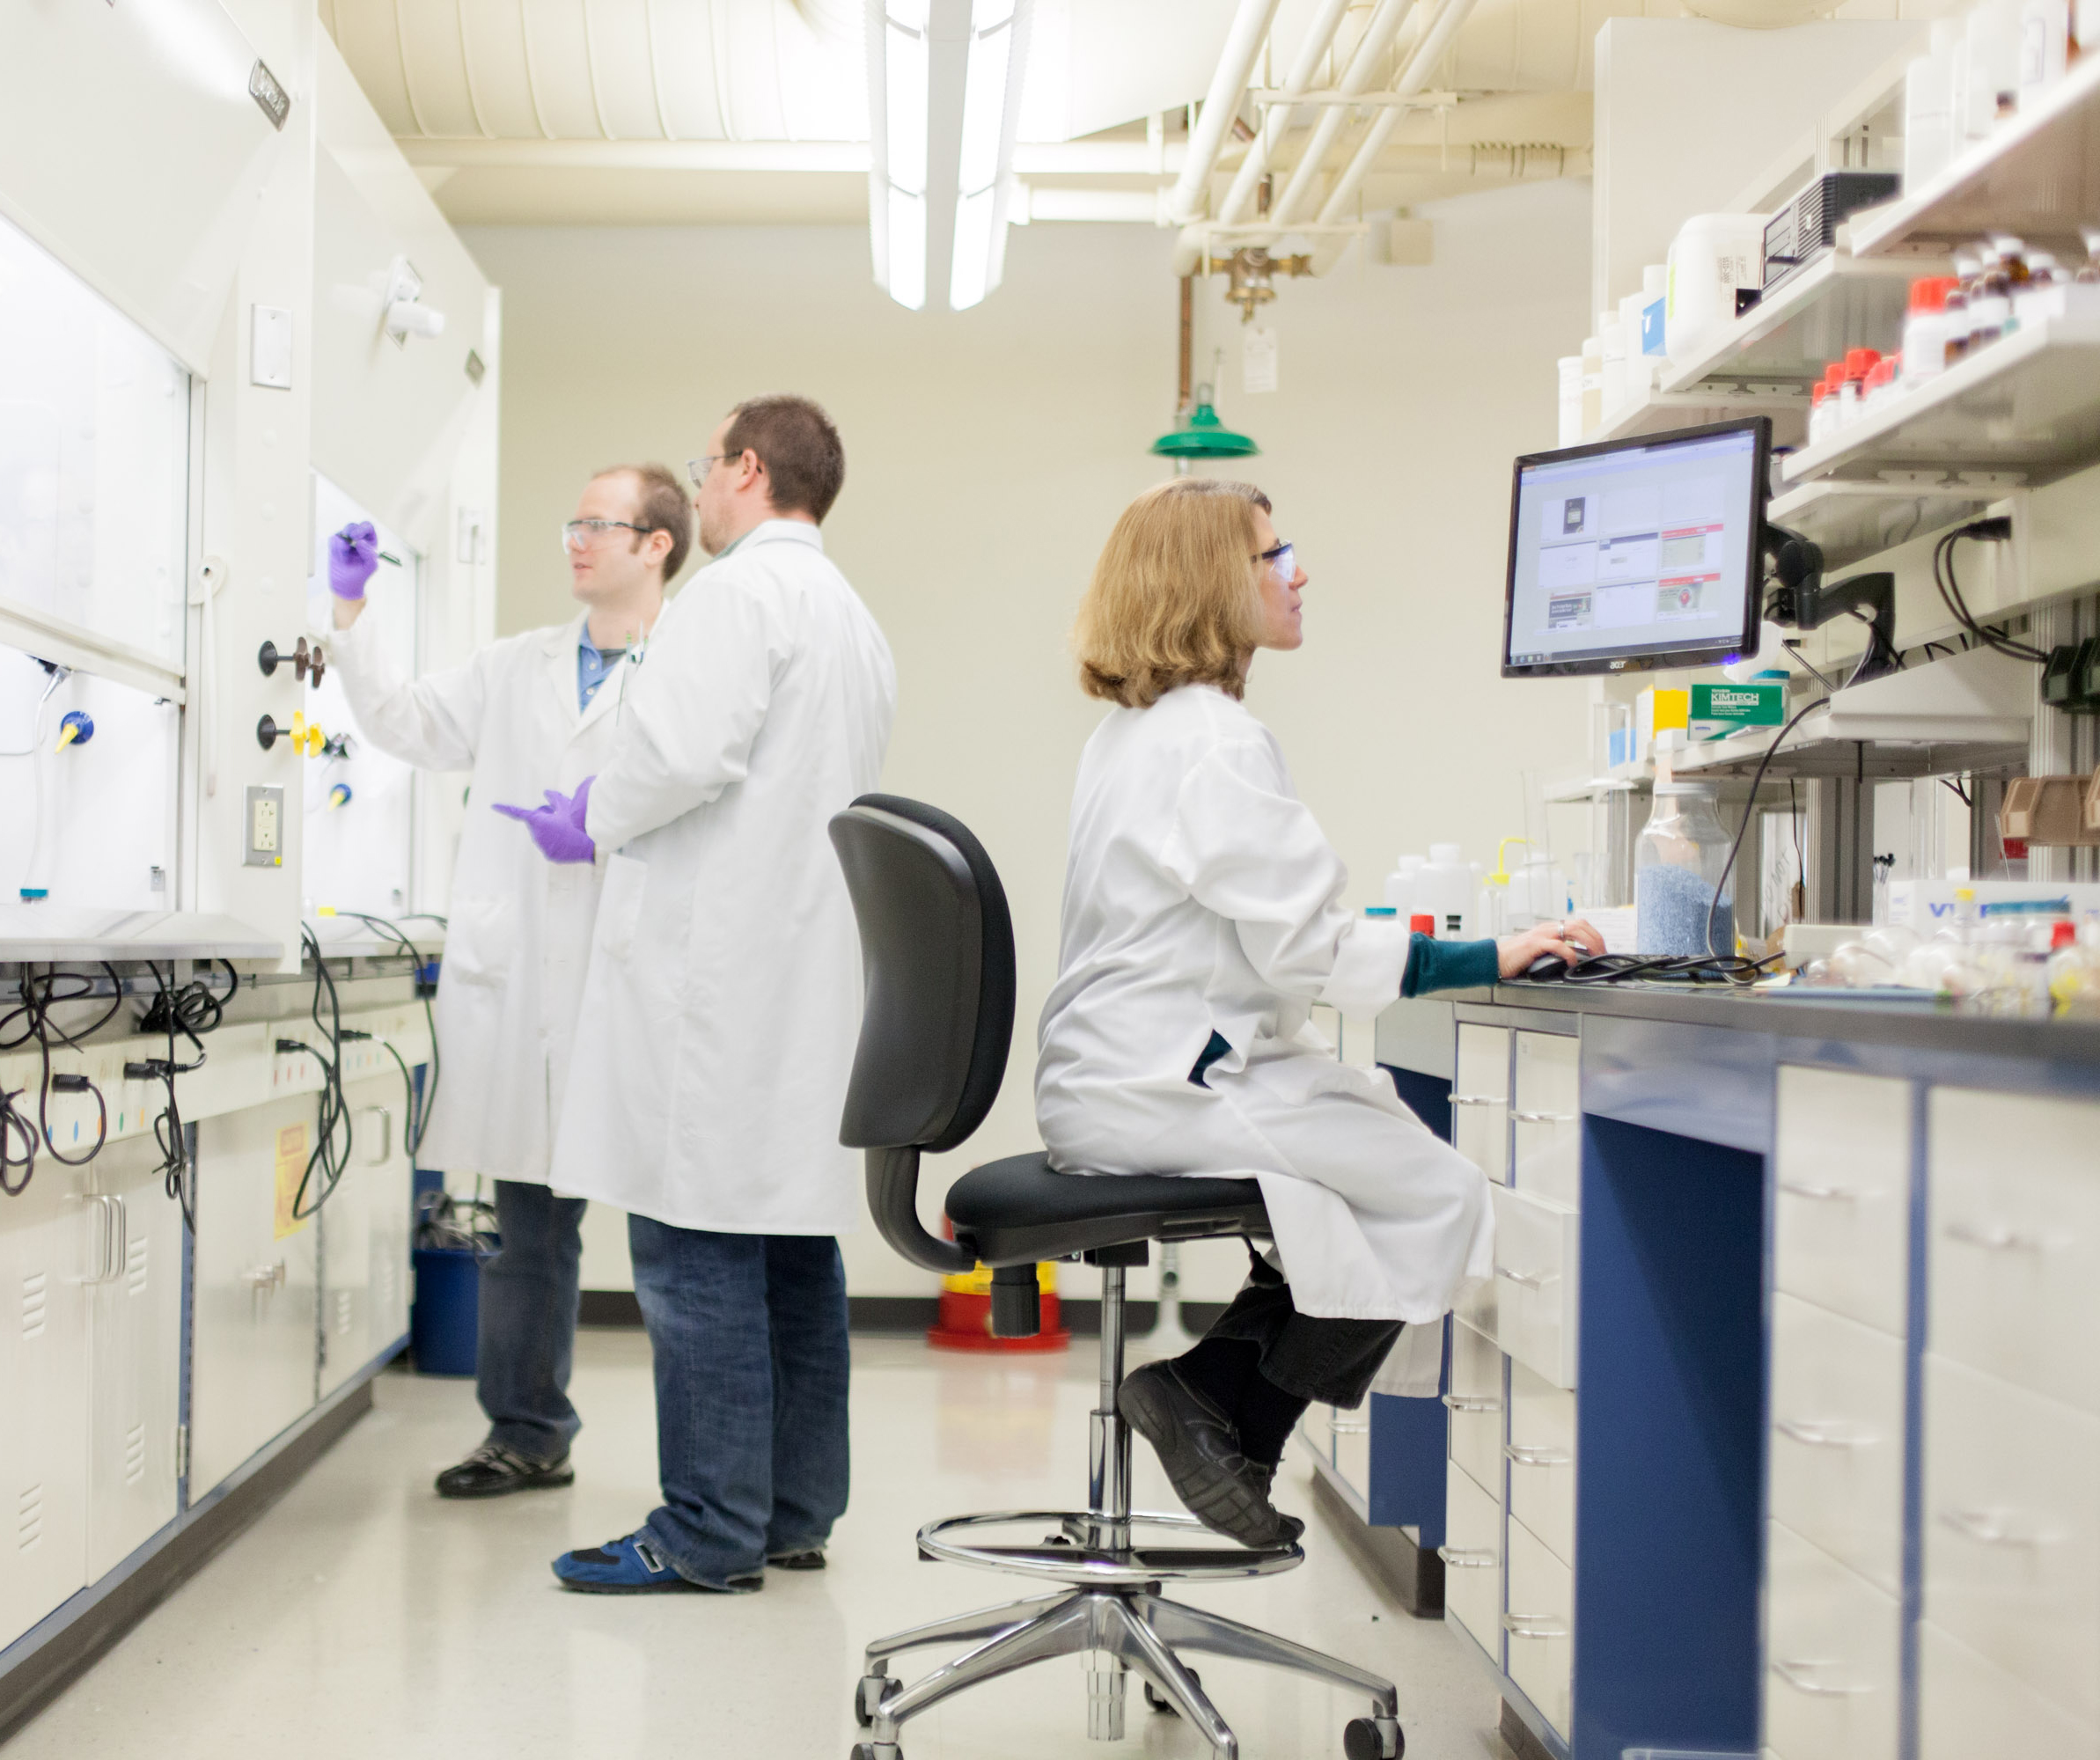 We are driven by our unwavering commitment to patients, our partners, and the bioscience community to revolutionize medicine. -